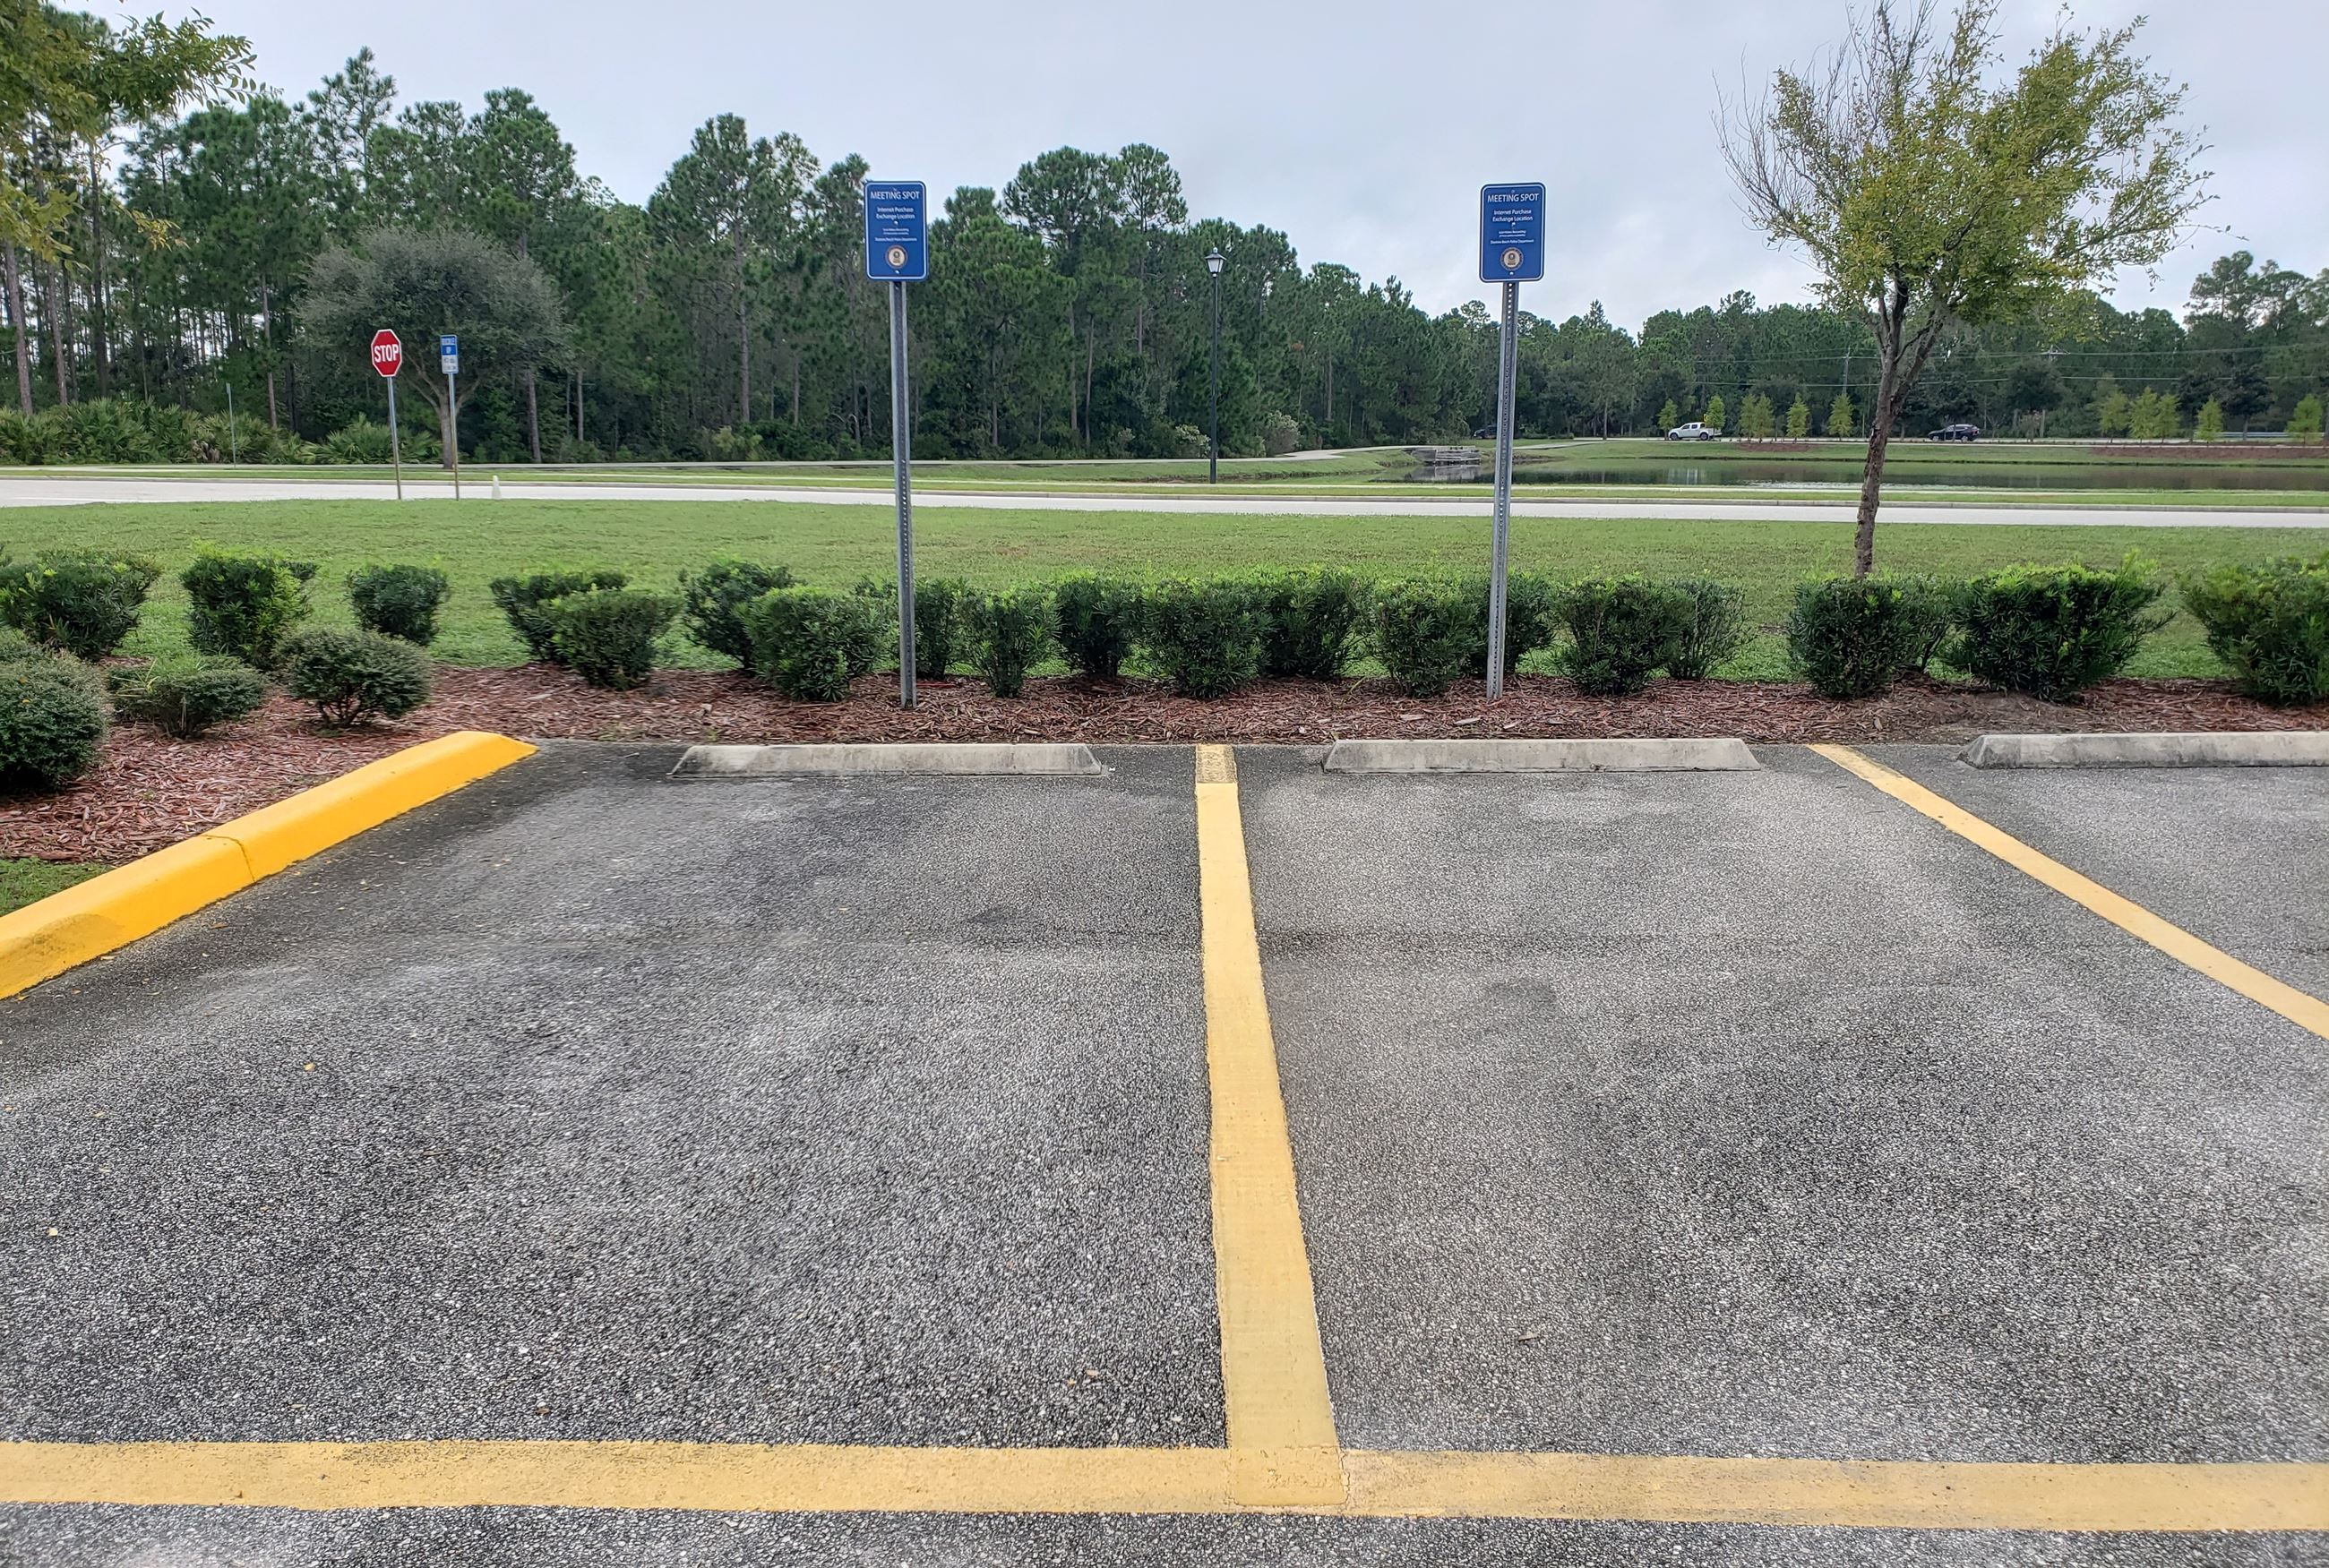 parking lot internet meeting area 129 valor